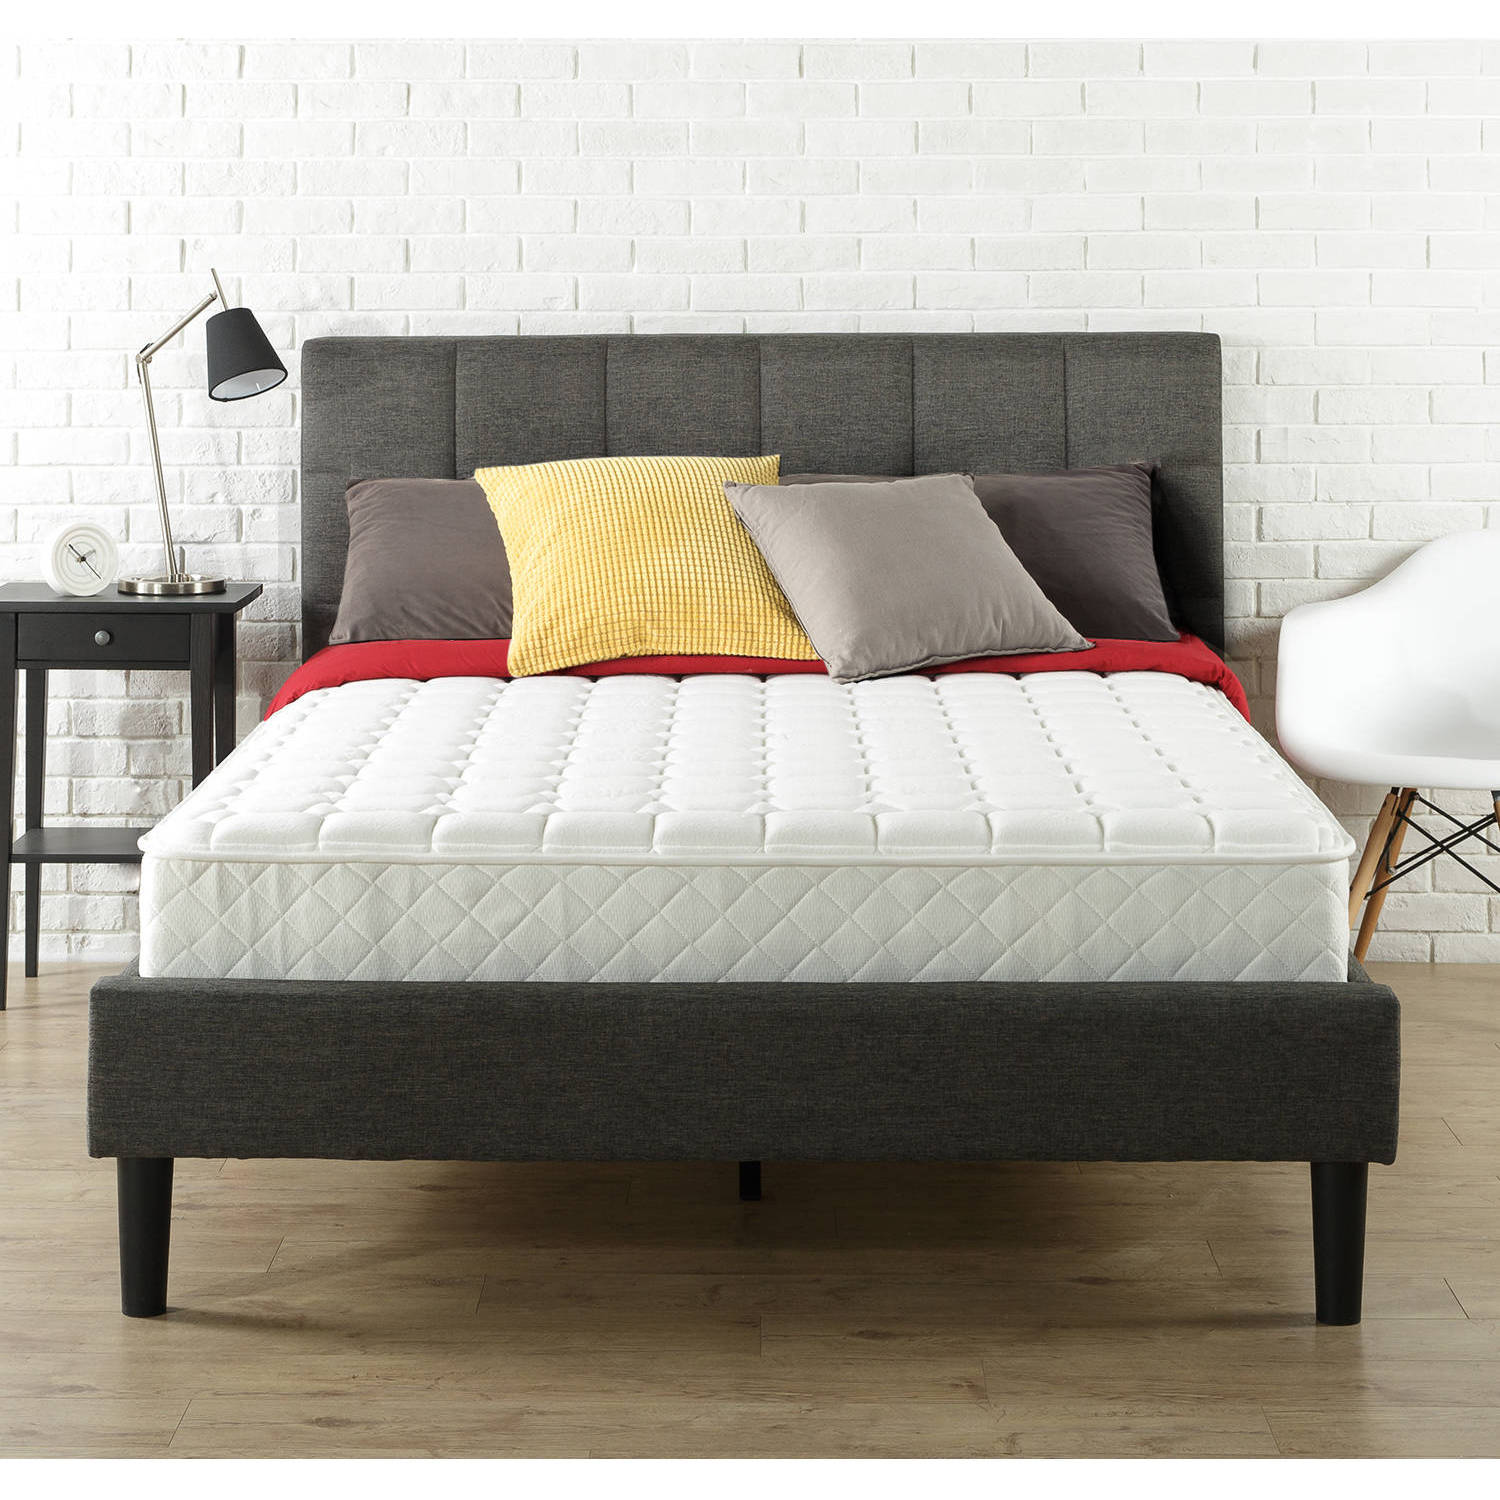 slumber 1 8 spring mattress in a box multiple sizes walmartcom - Walmart King Bed Frame